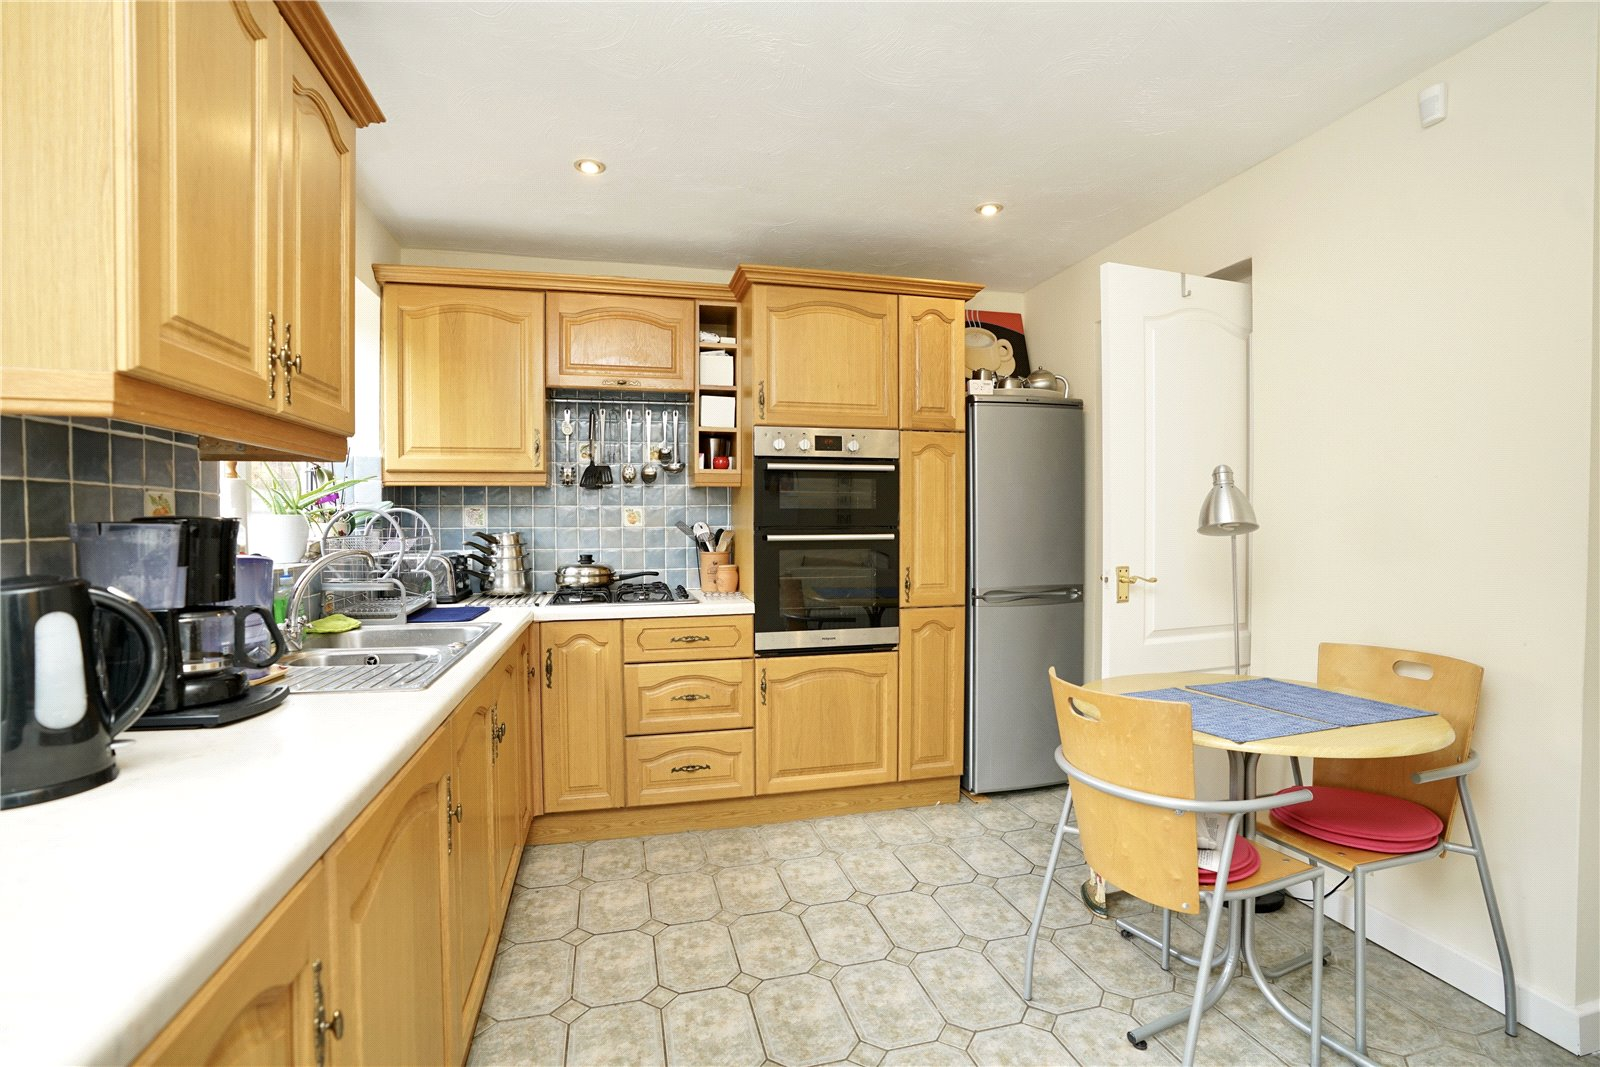 3 bed house for sale in Cunningham Way, Eaton Socon  - Property Image 7